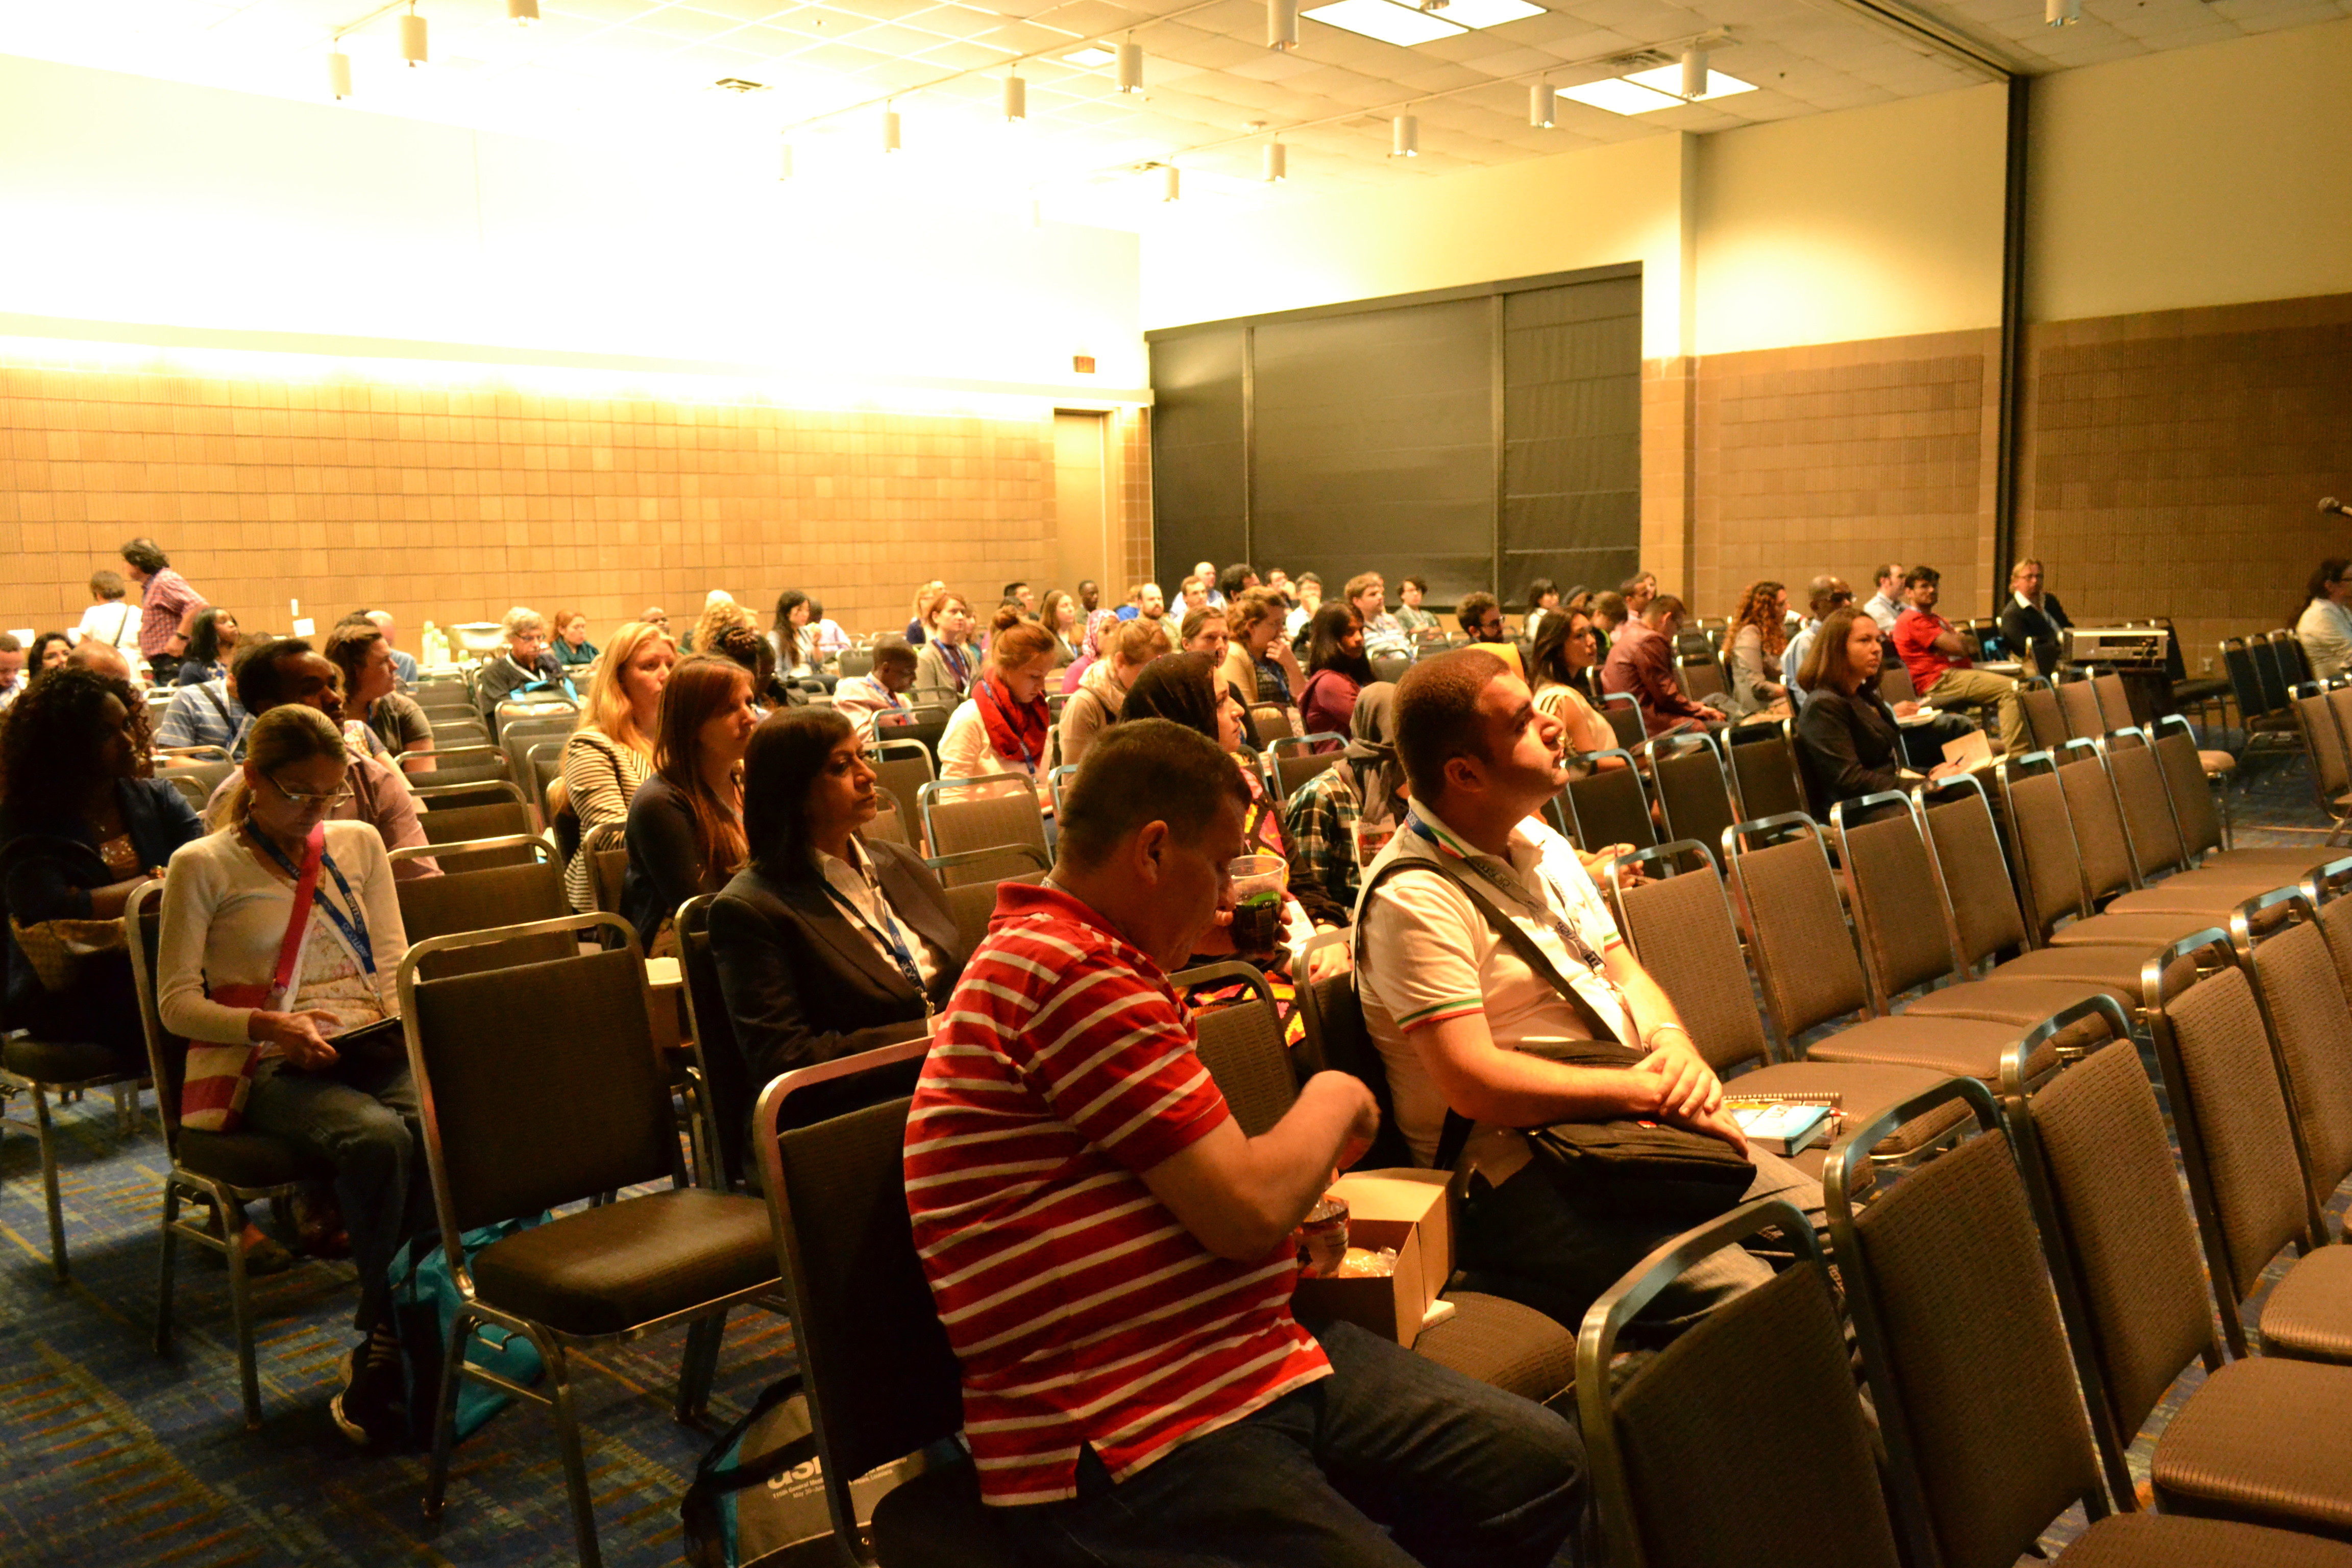 36th meeting of the american society for photobiology